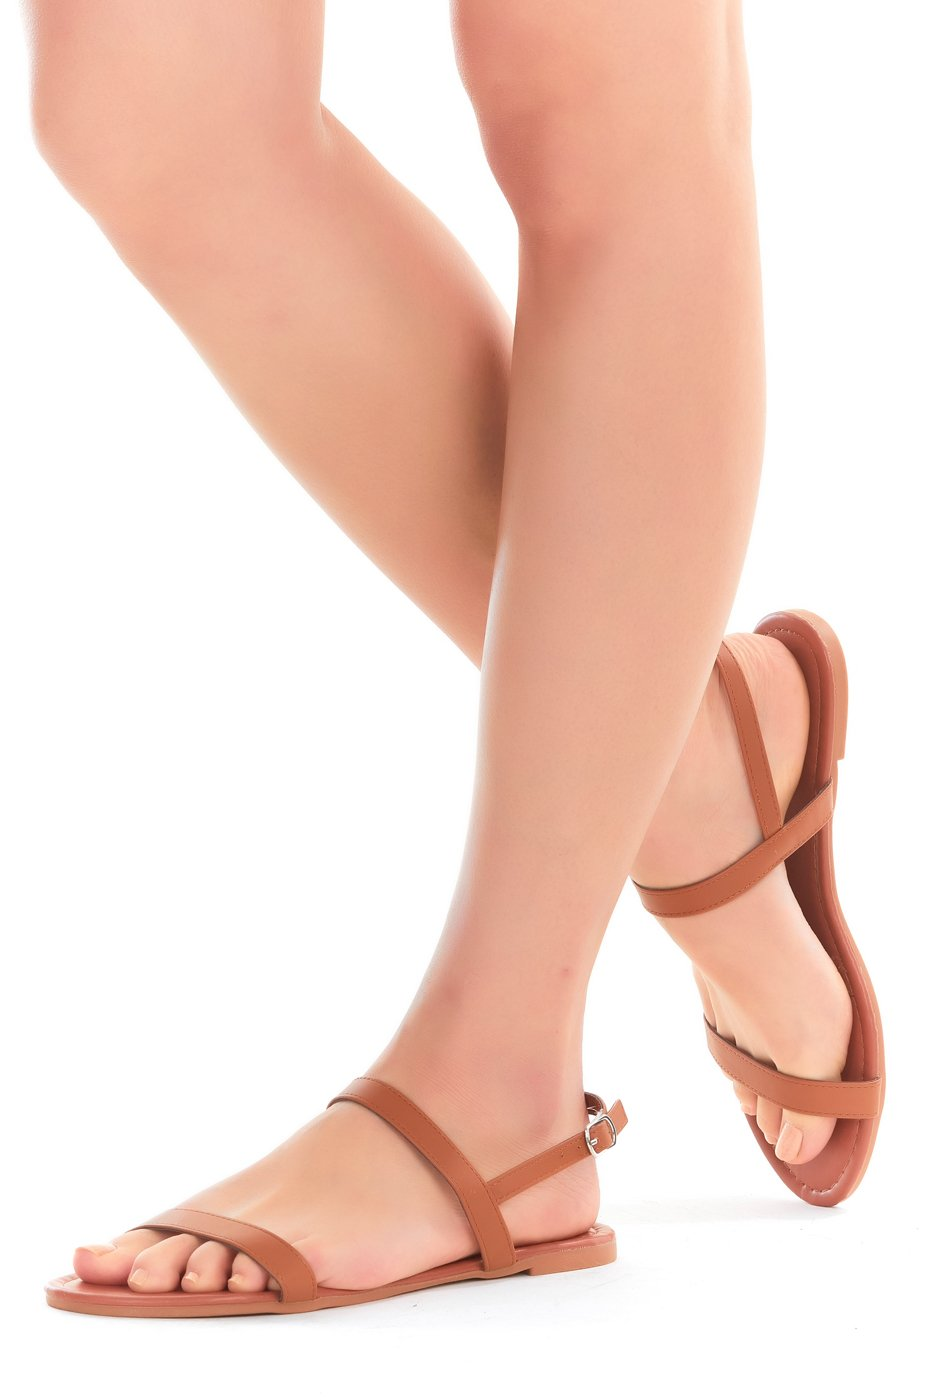 Womens Sandals, Double Strap, Open Toe Flat Summer Sandals for Women, Shoes for Ladies (8, Rose Gold)